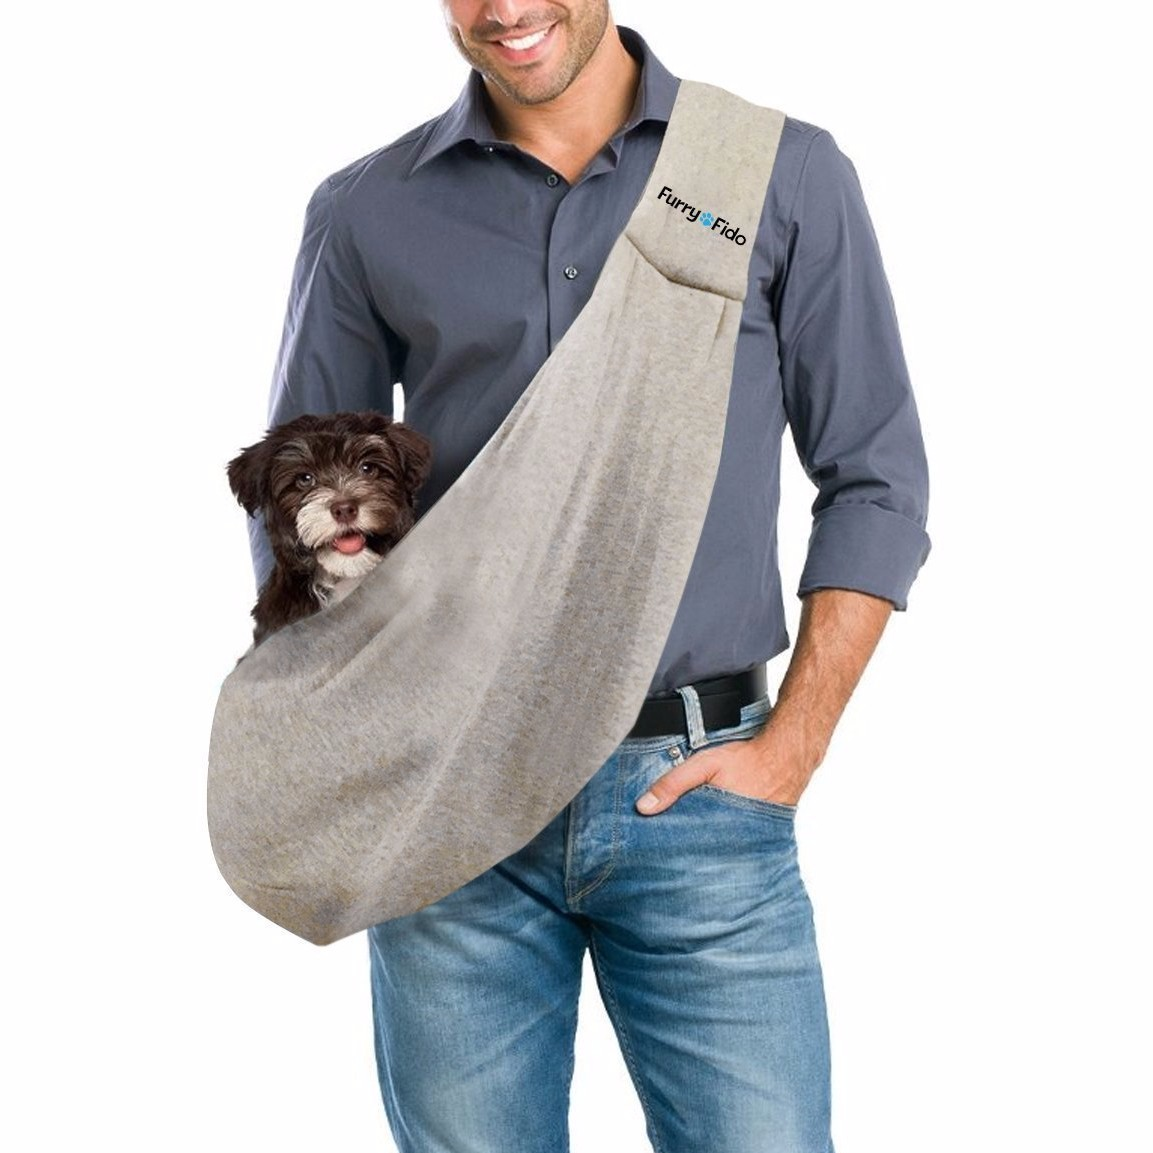 It is a bag for your dogs rather than a true wearable